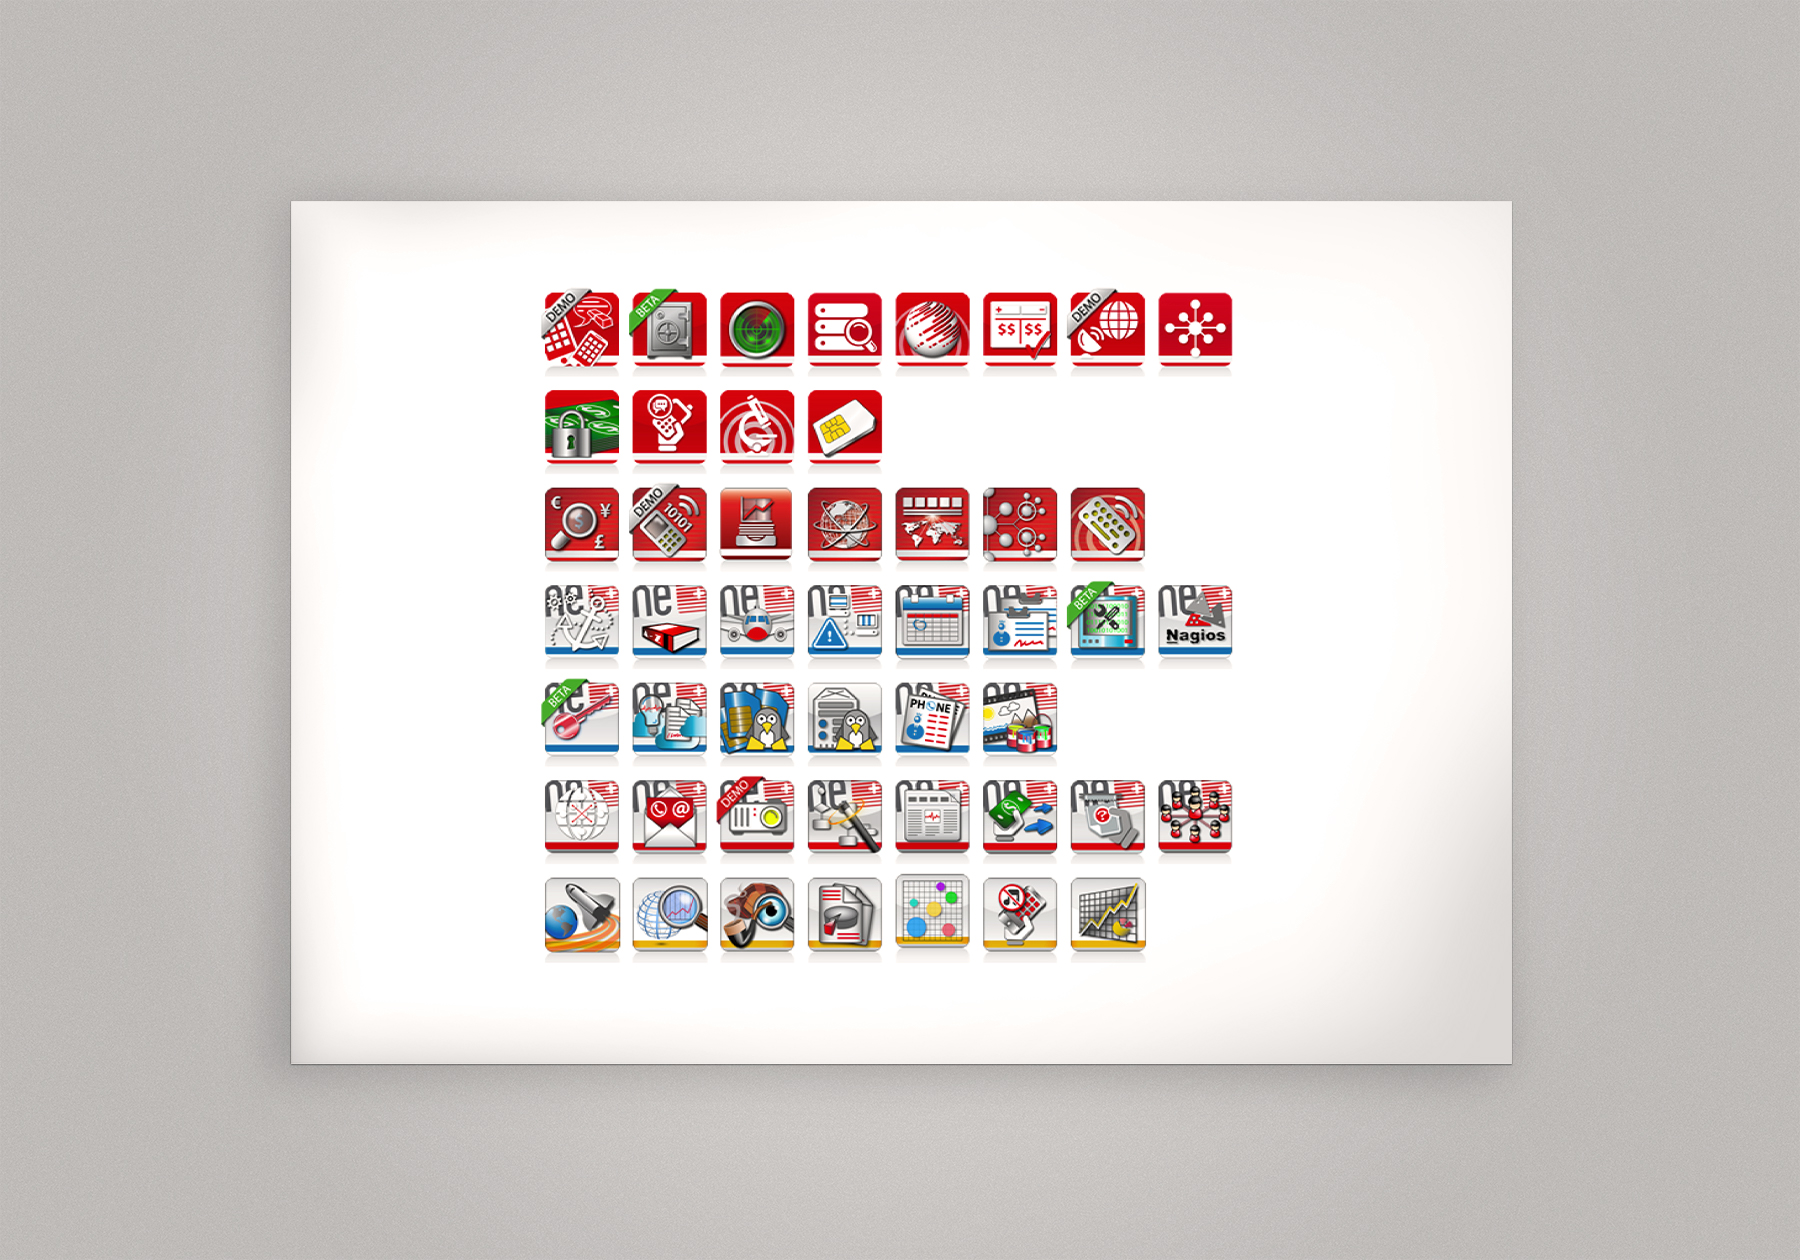 qda design portfolio: referenz comfone services icons adobe illustrator cc